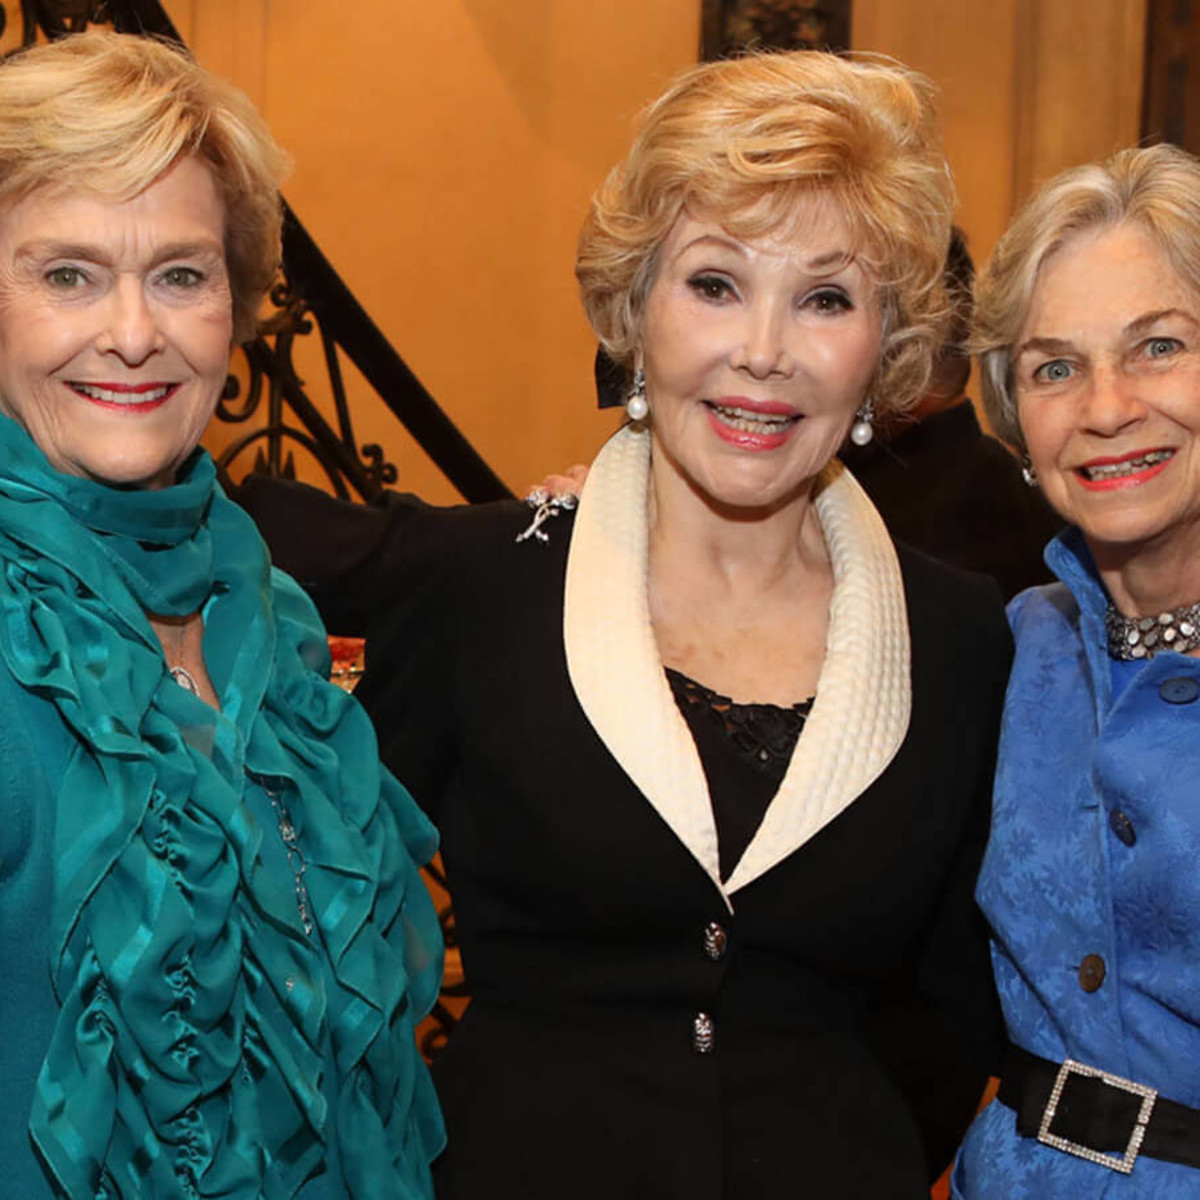 Houston, Barbara Bush Literacy Foundation Guild Tea, Nov. 2016, Annette Strake, Joanne King Herring, Anne Mendelsohn